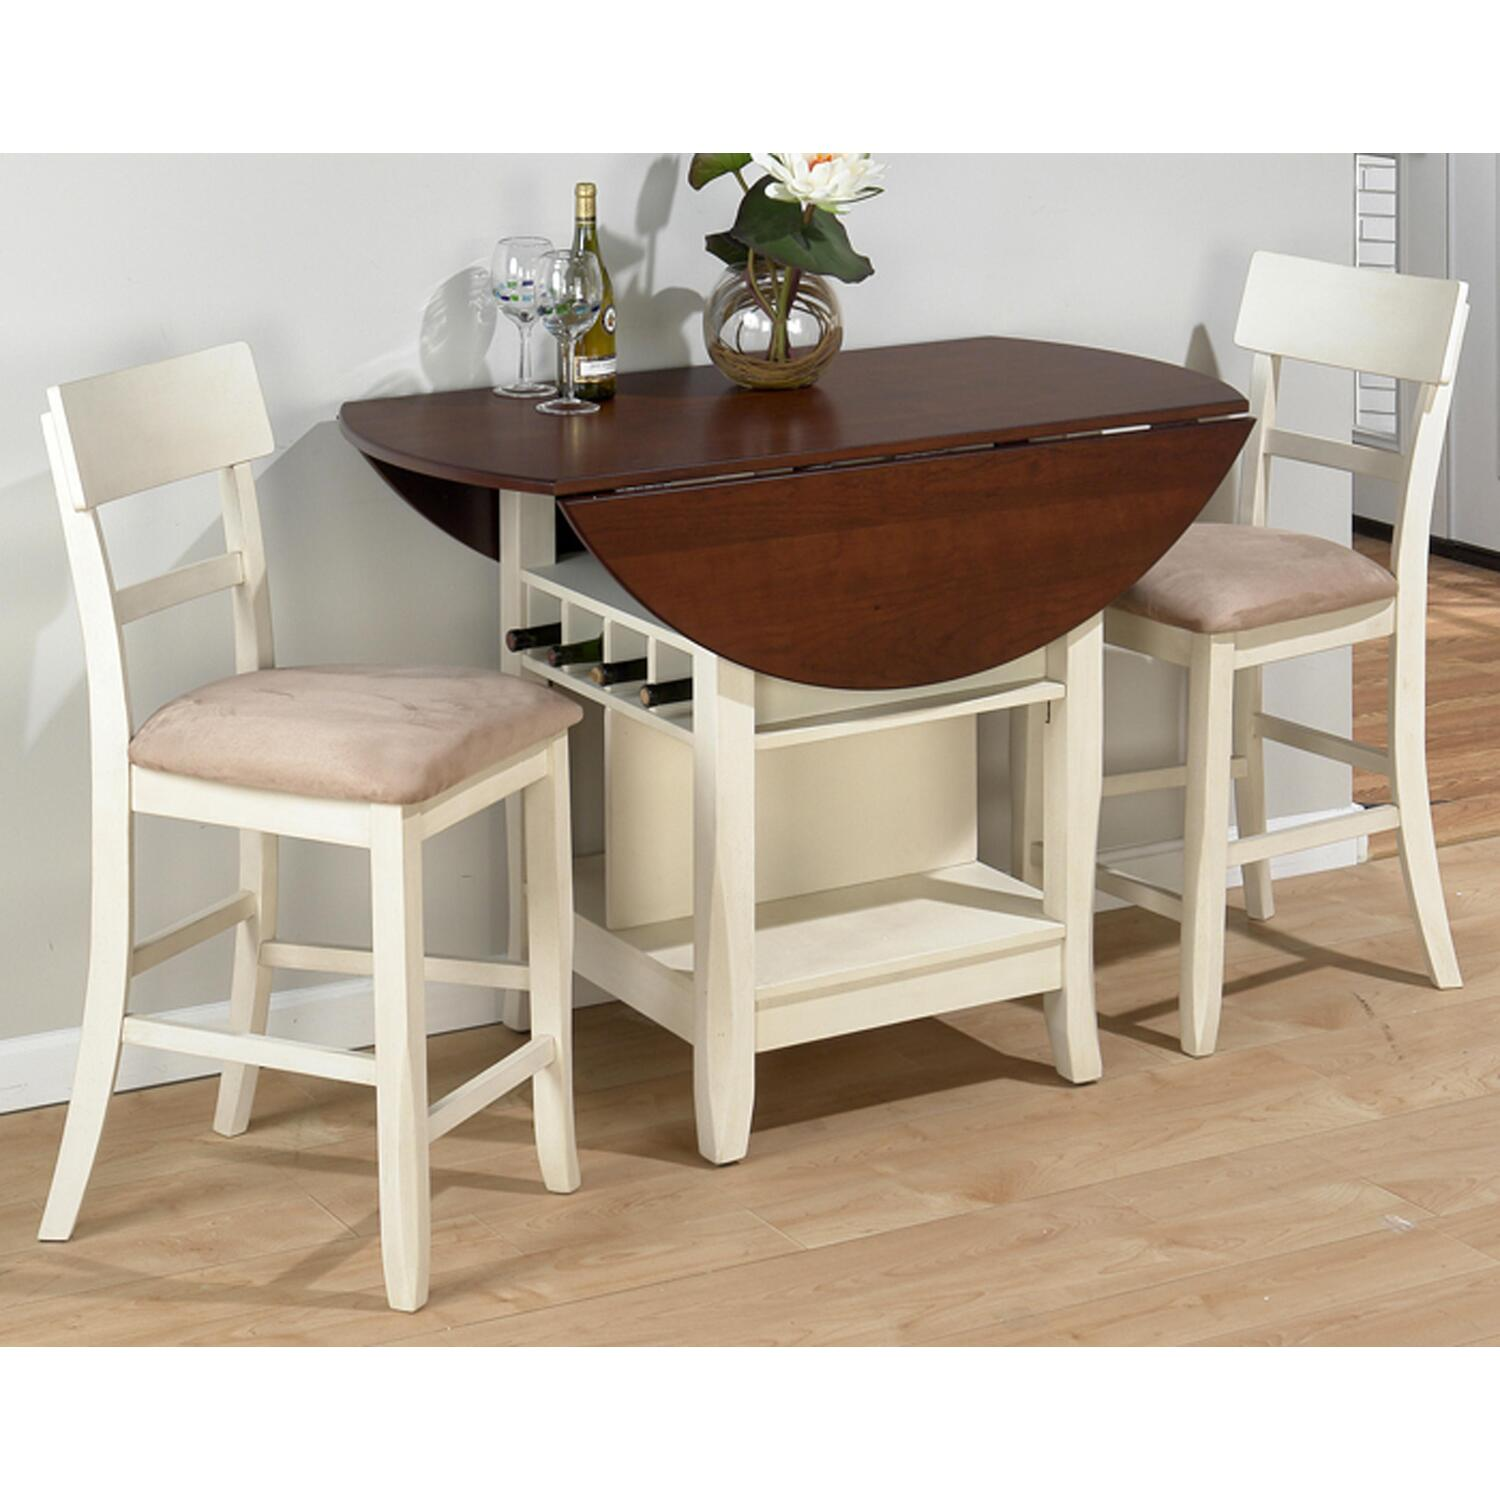 Jofran Frosted White Cherry Finished 3 Piece Dining Set